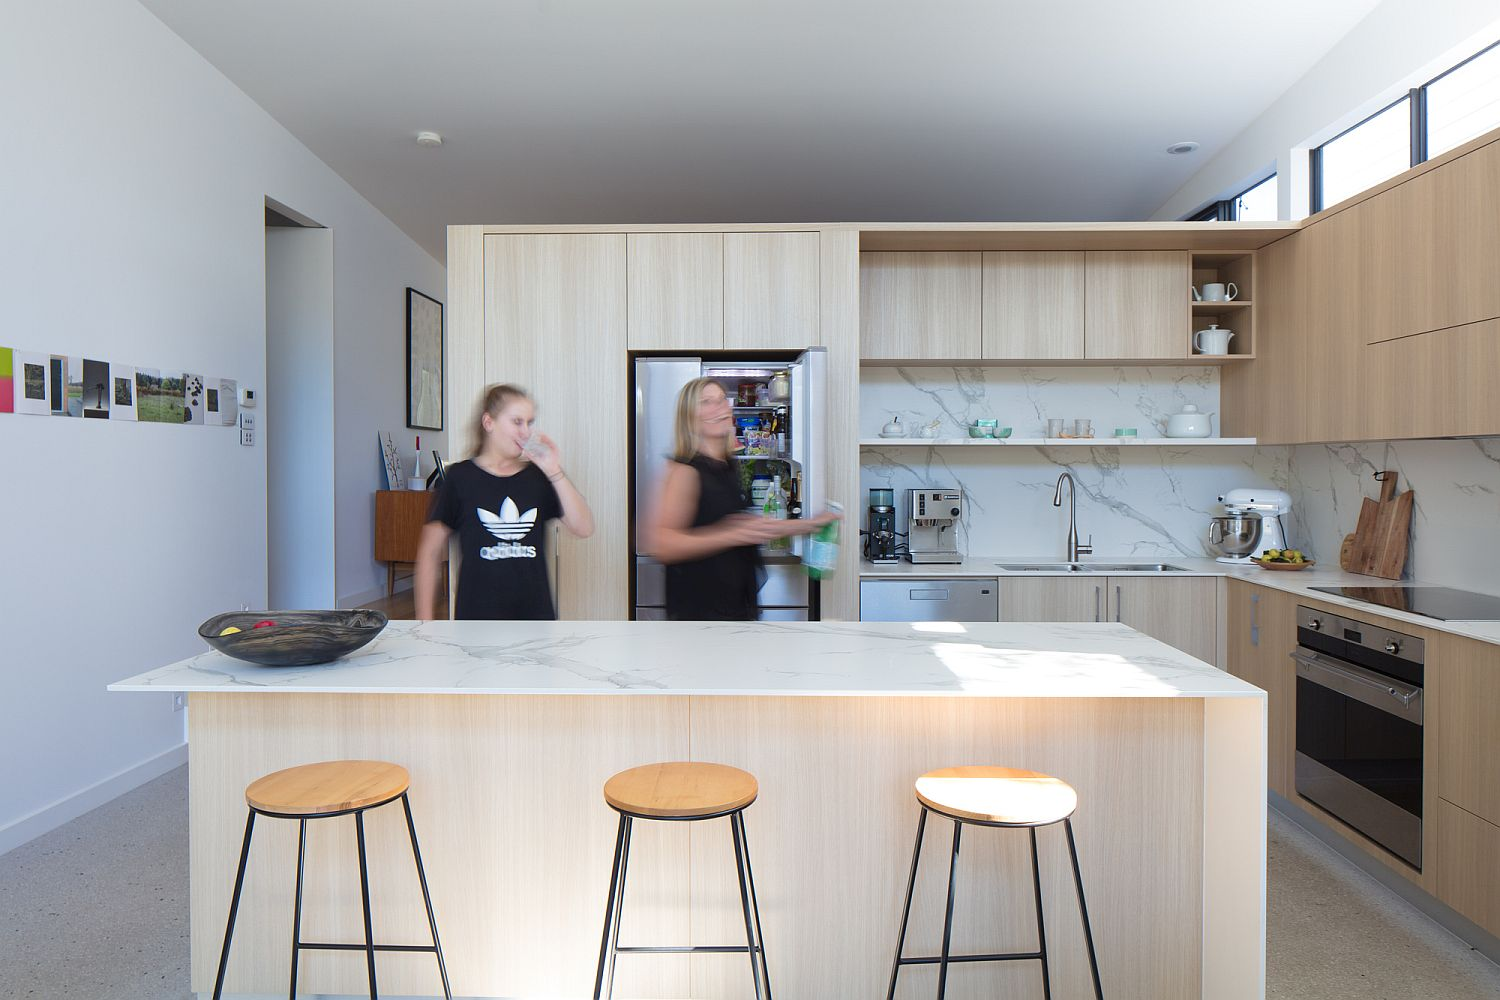 Functional-kitchen-in-white-with-wooden-warmth-thrown-into-the-mix